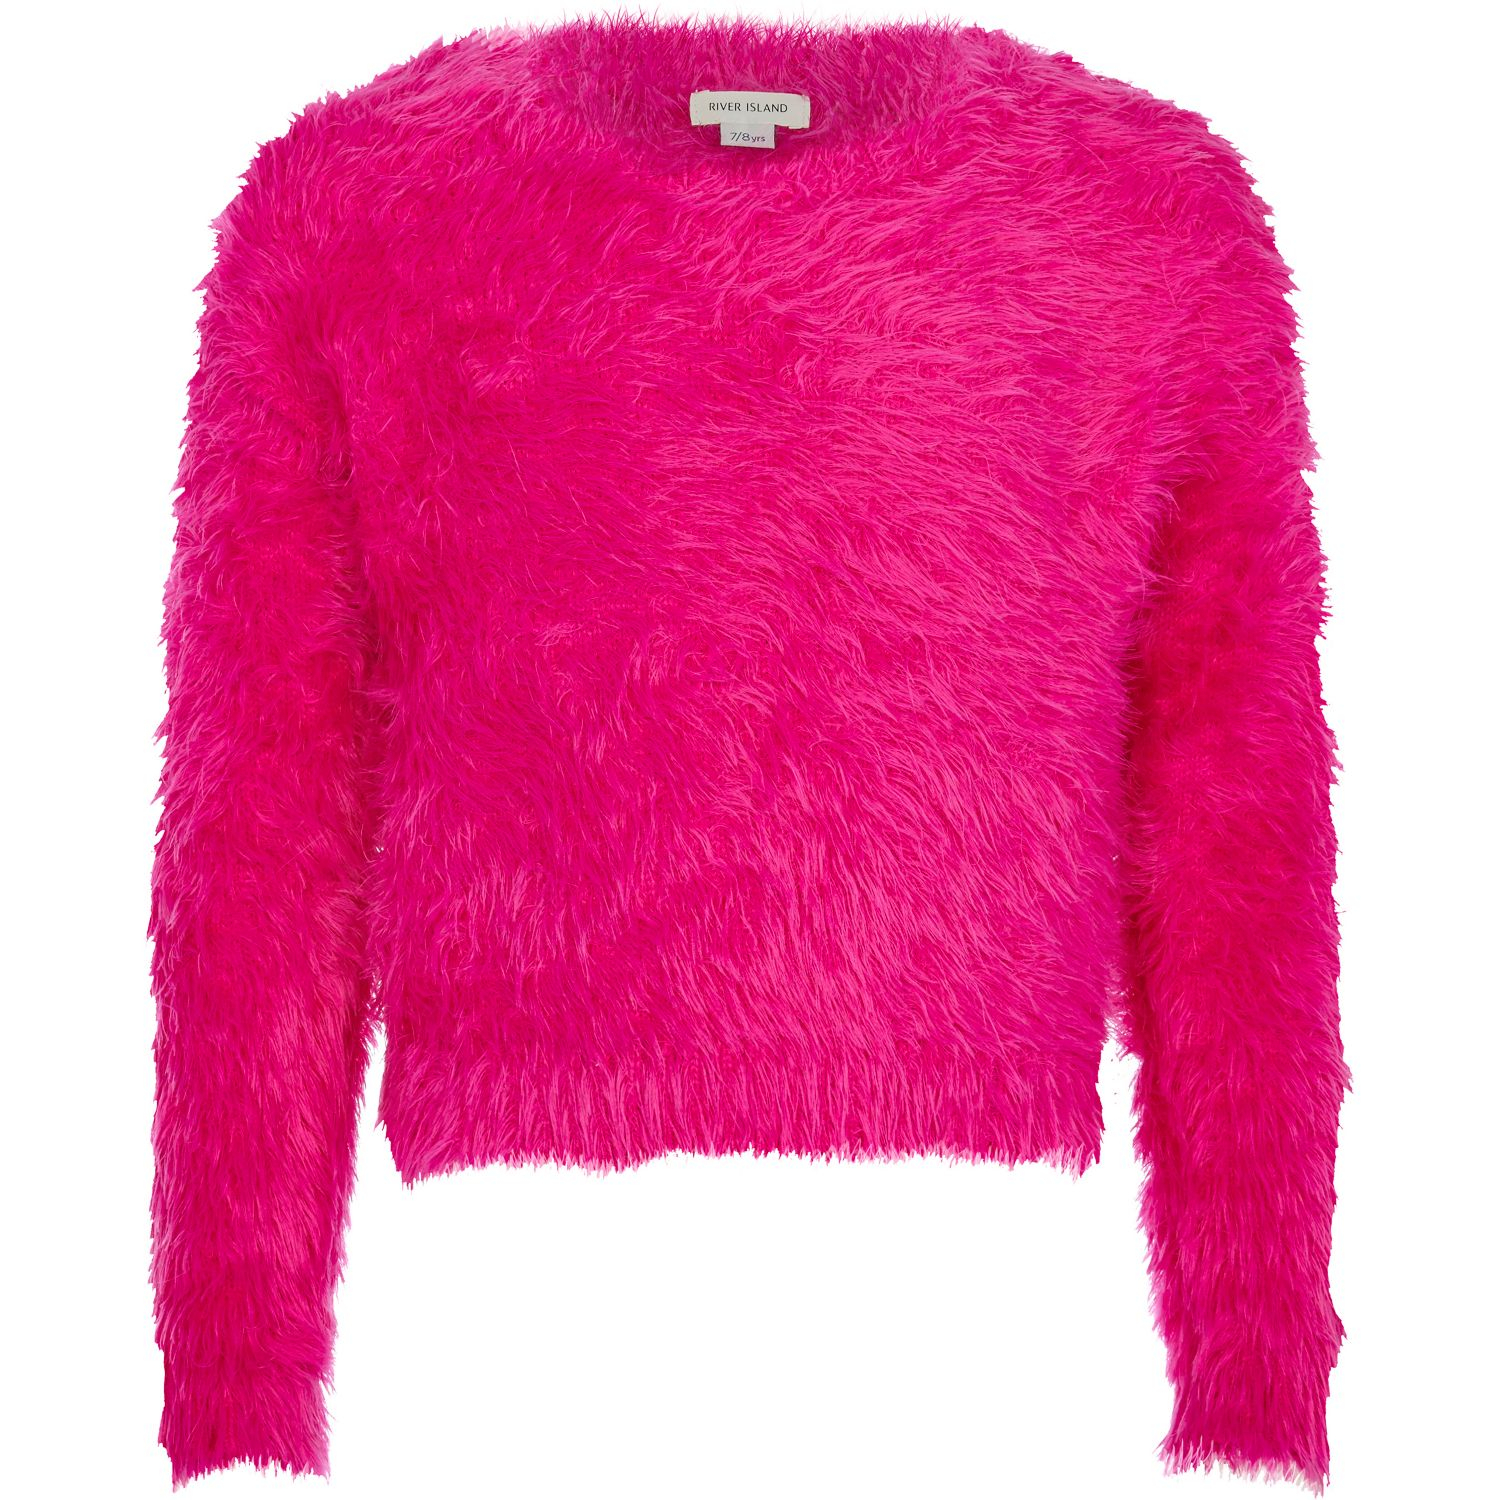 Red fluffy jumper Open V back The jumper can be styled both ways (reversible) One size fits all Gentle machine wash 60% Acrylic, 30% Polyamide, 10% Wool Our .